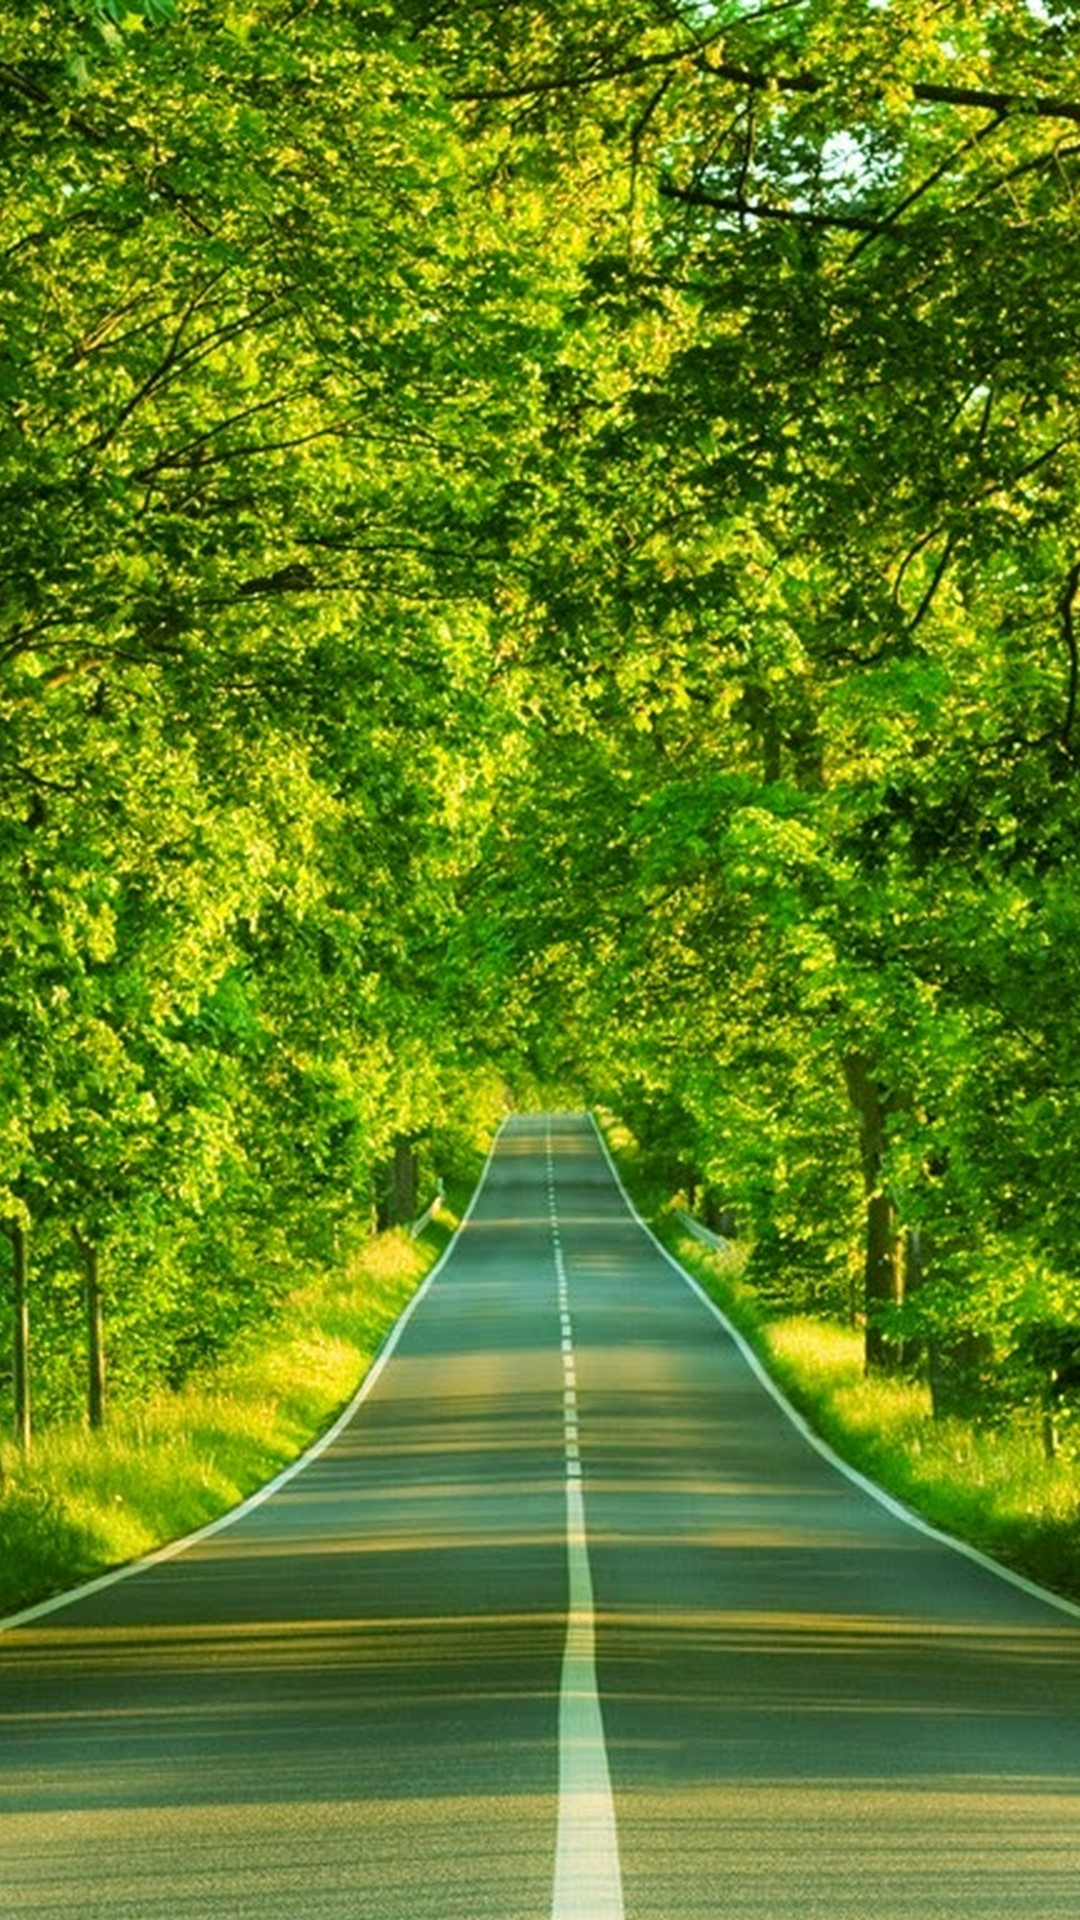 Iphone 8 Wallpaper Nature Green With Image Resolution Nature Wallpaper For Samsung J7 1080x1920 Wallpaper Teahub Io